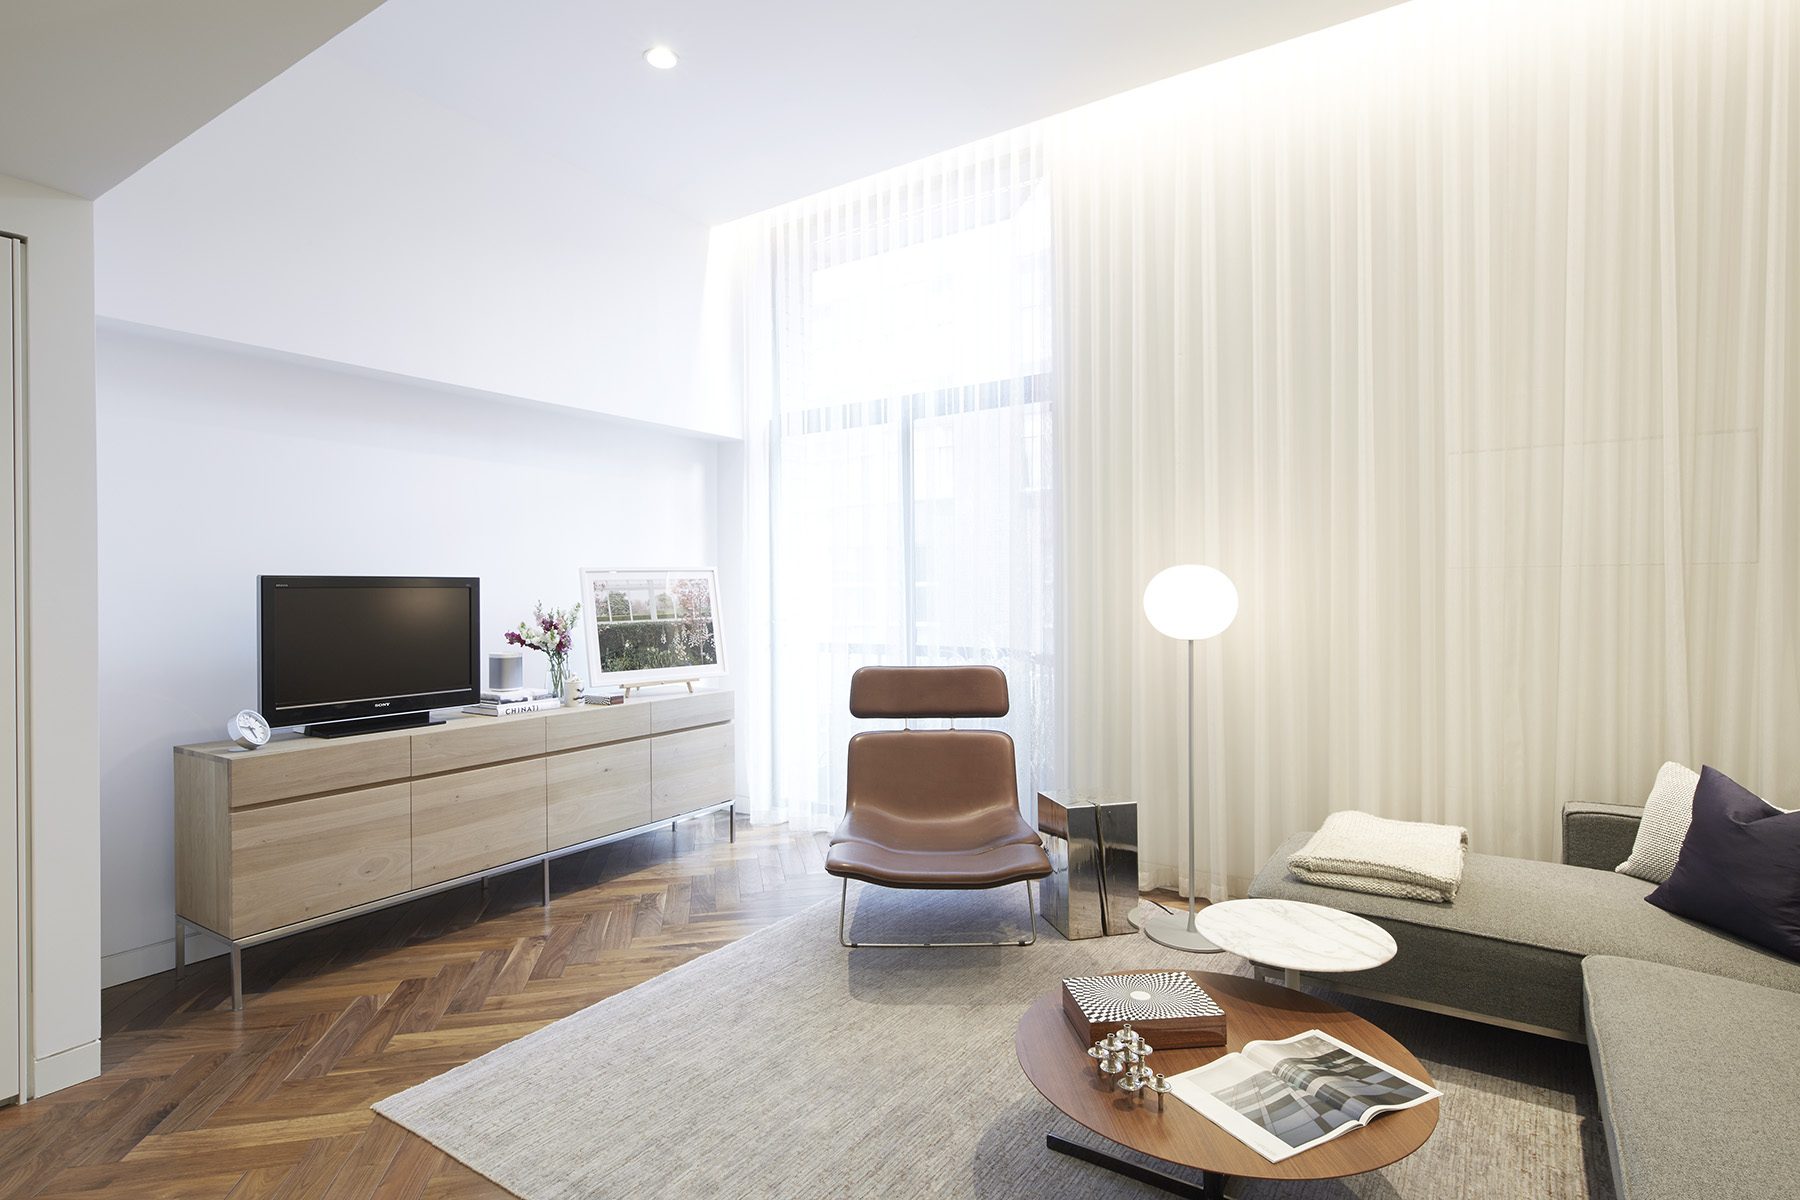 STADT Architecture, Gramercy Apartment, Cappellini, ABC Home, Walnut Floors, Fornasetti, STADT, nyc architects, ny apartment renovation